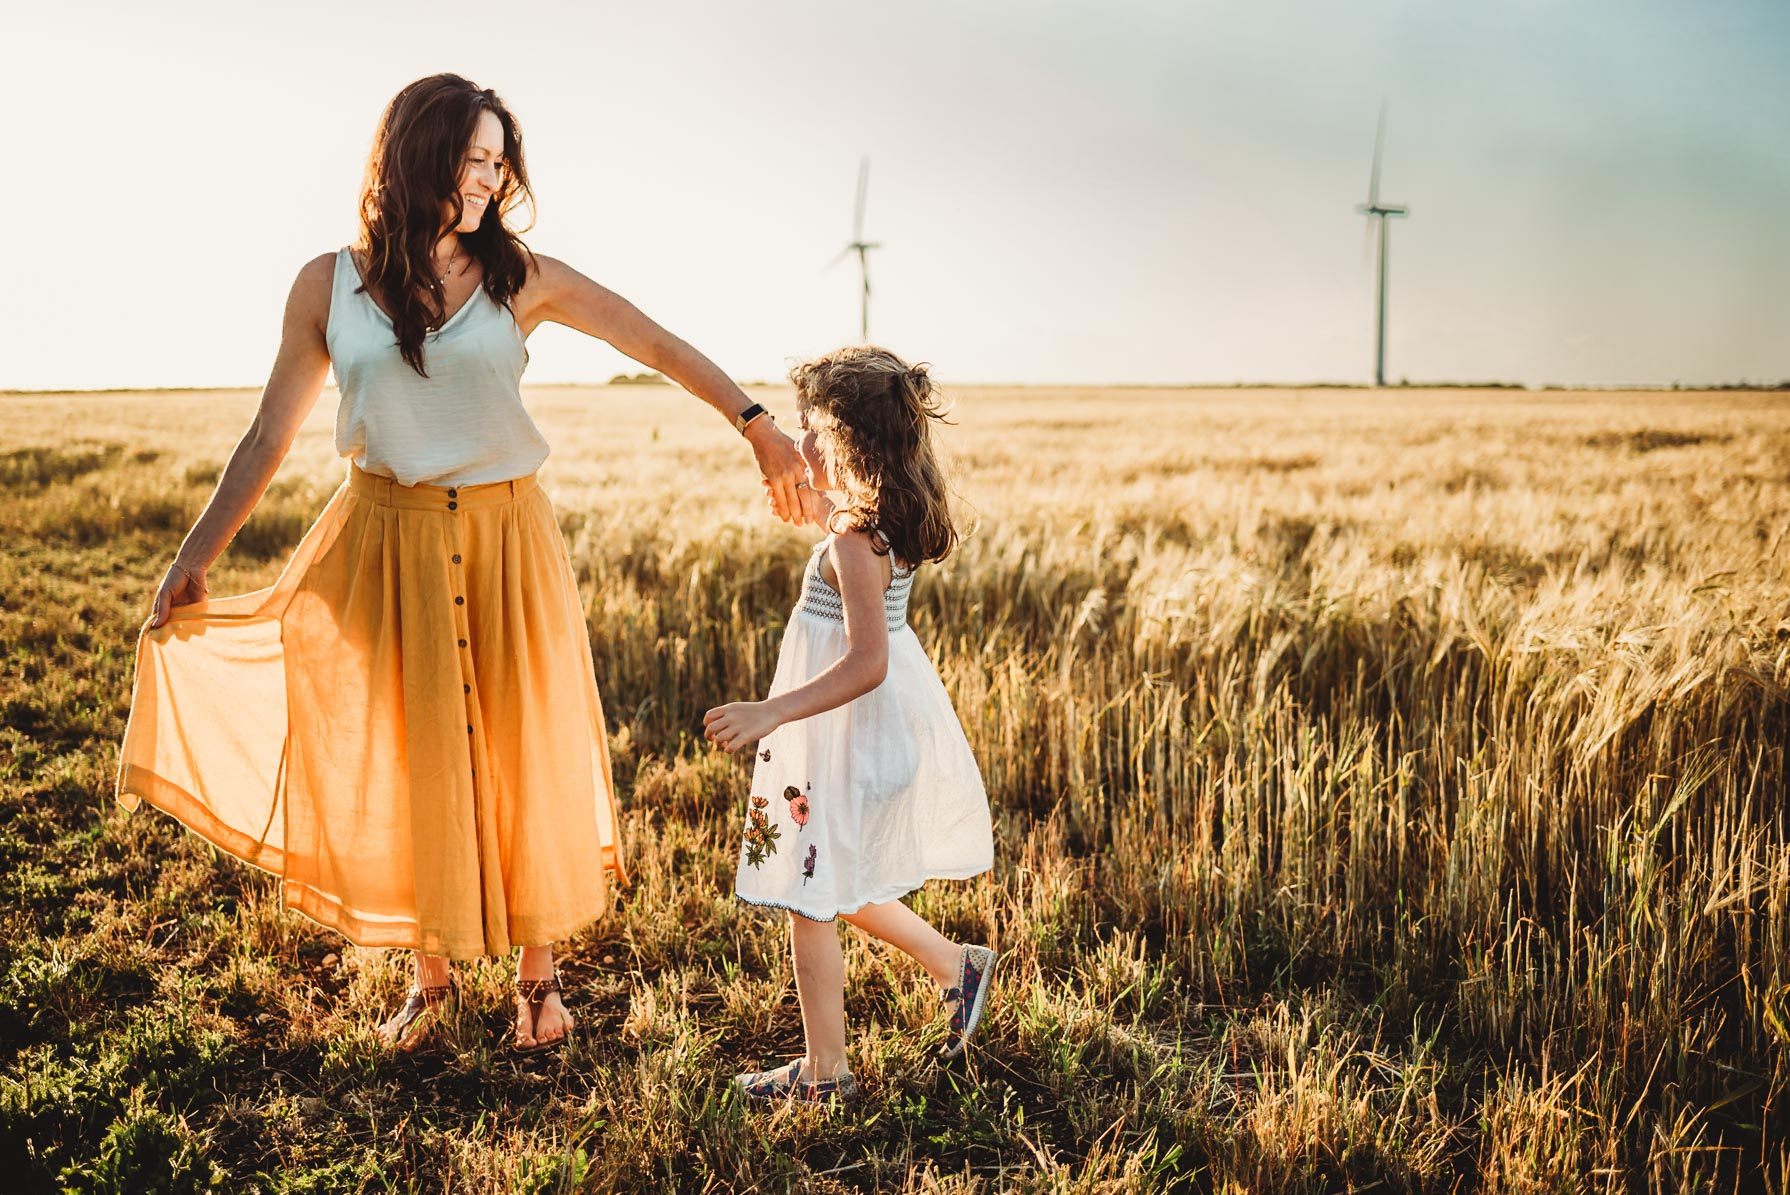 mother twirling with her little girl near a golden field with wind turbines in the back ground